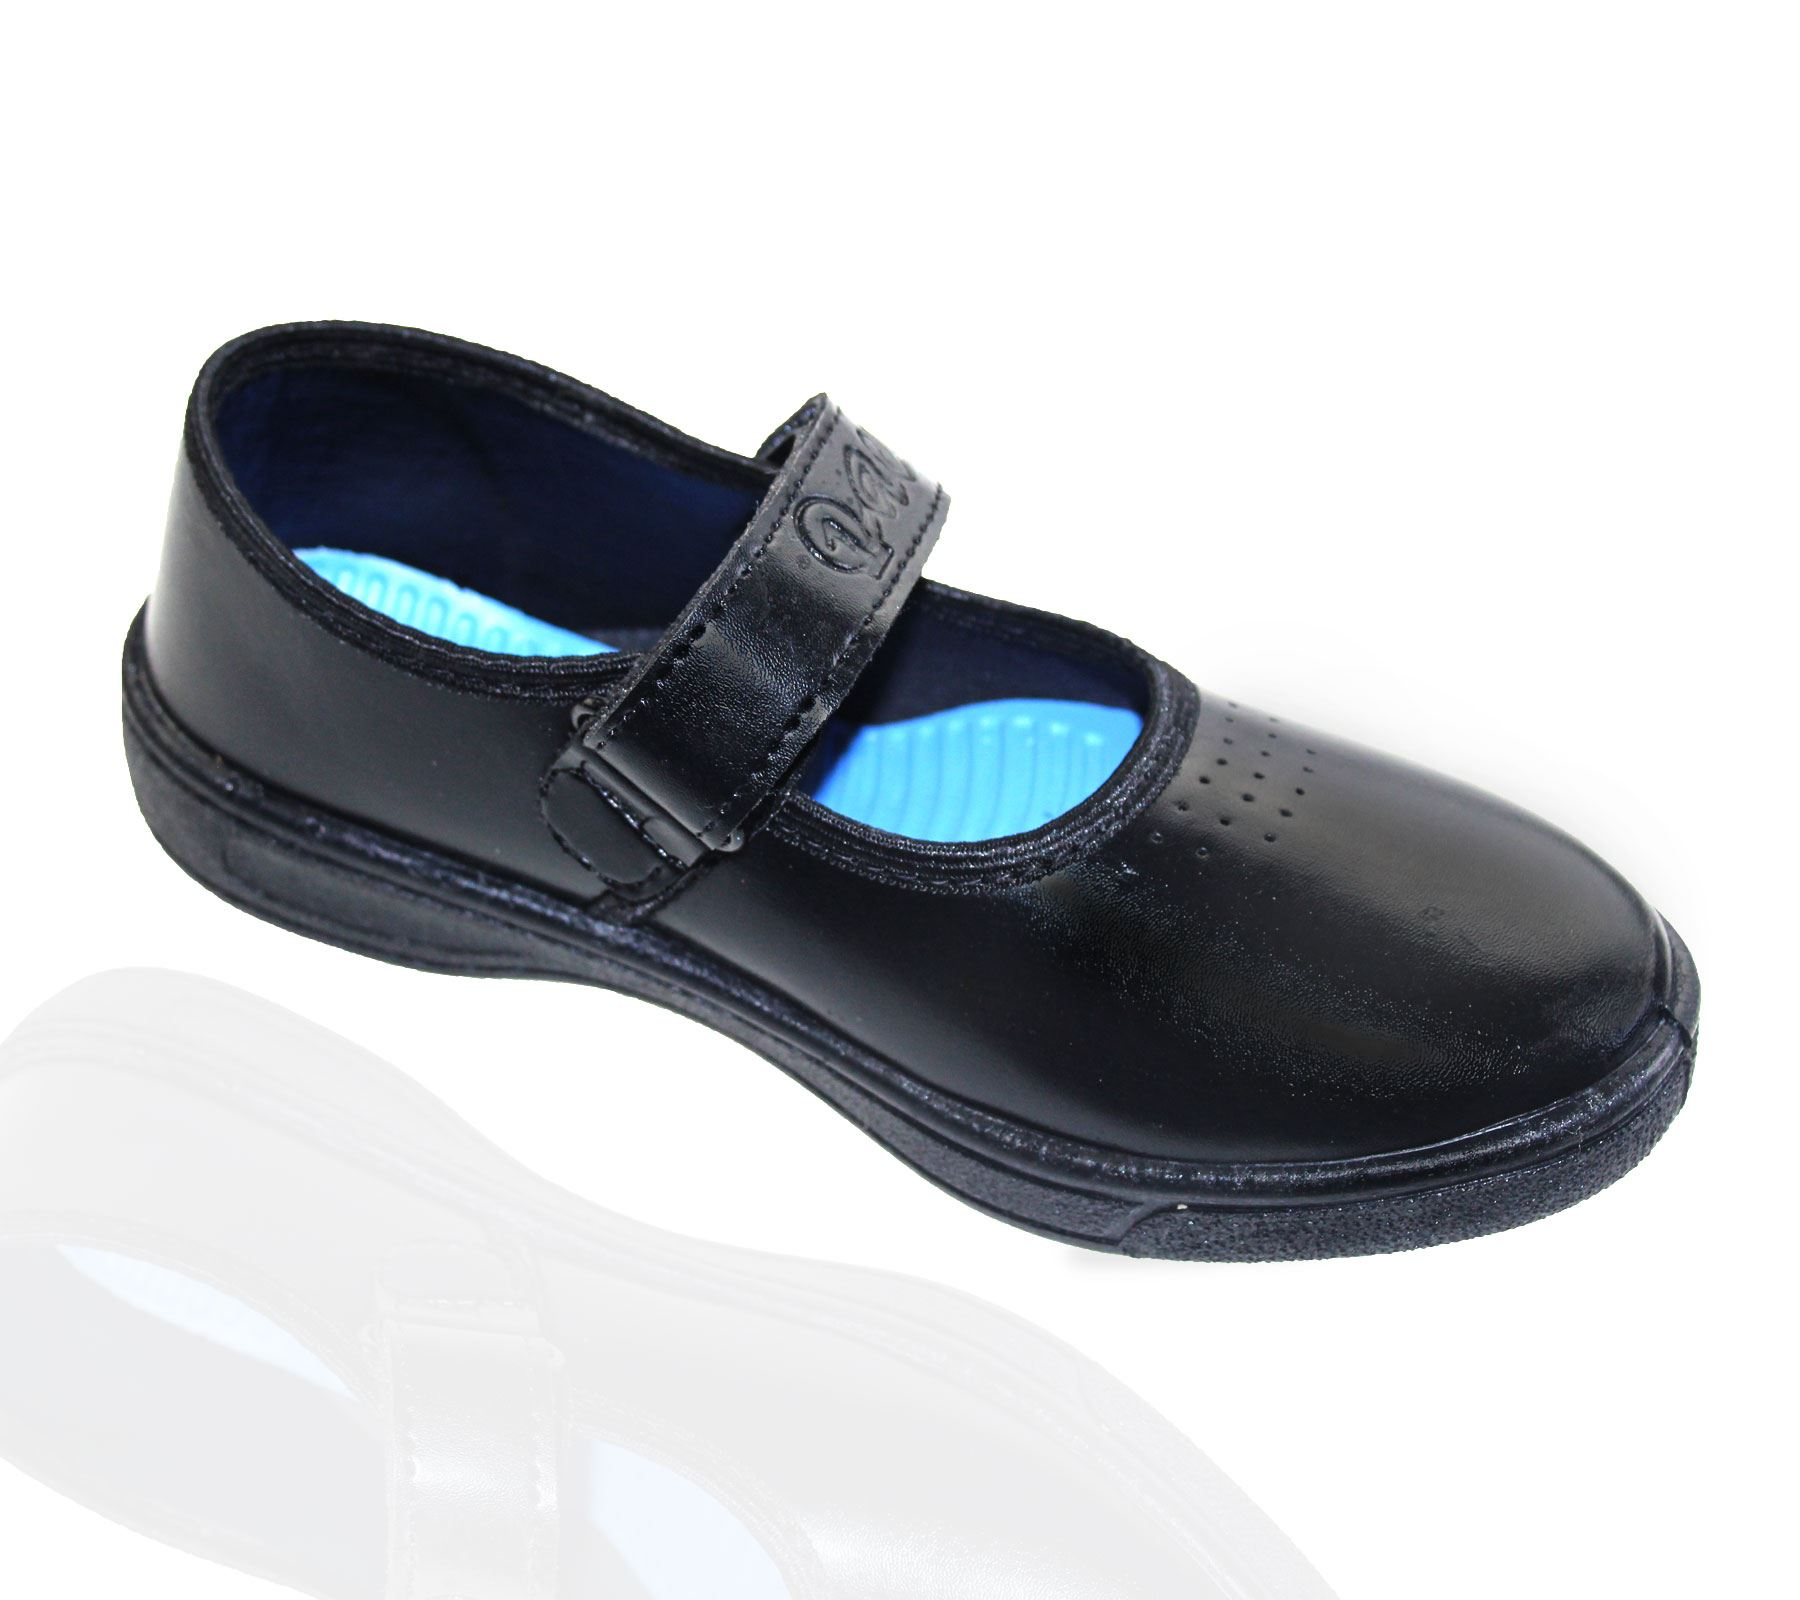 KOLLACHE Girls School Shoes Casual Formal Black Flats ...